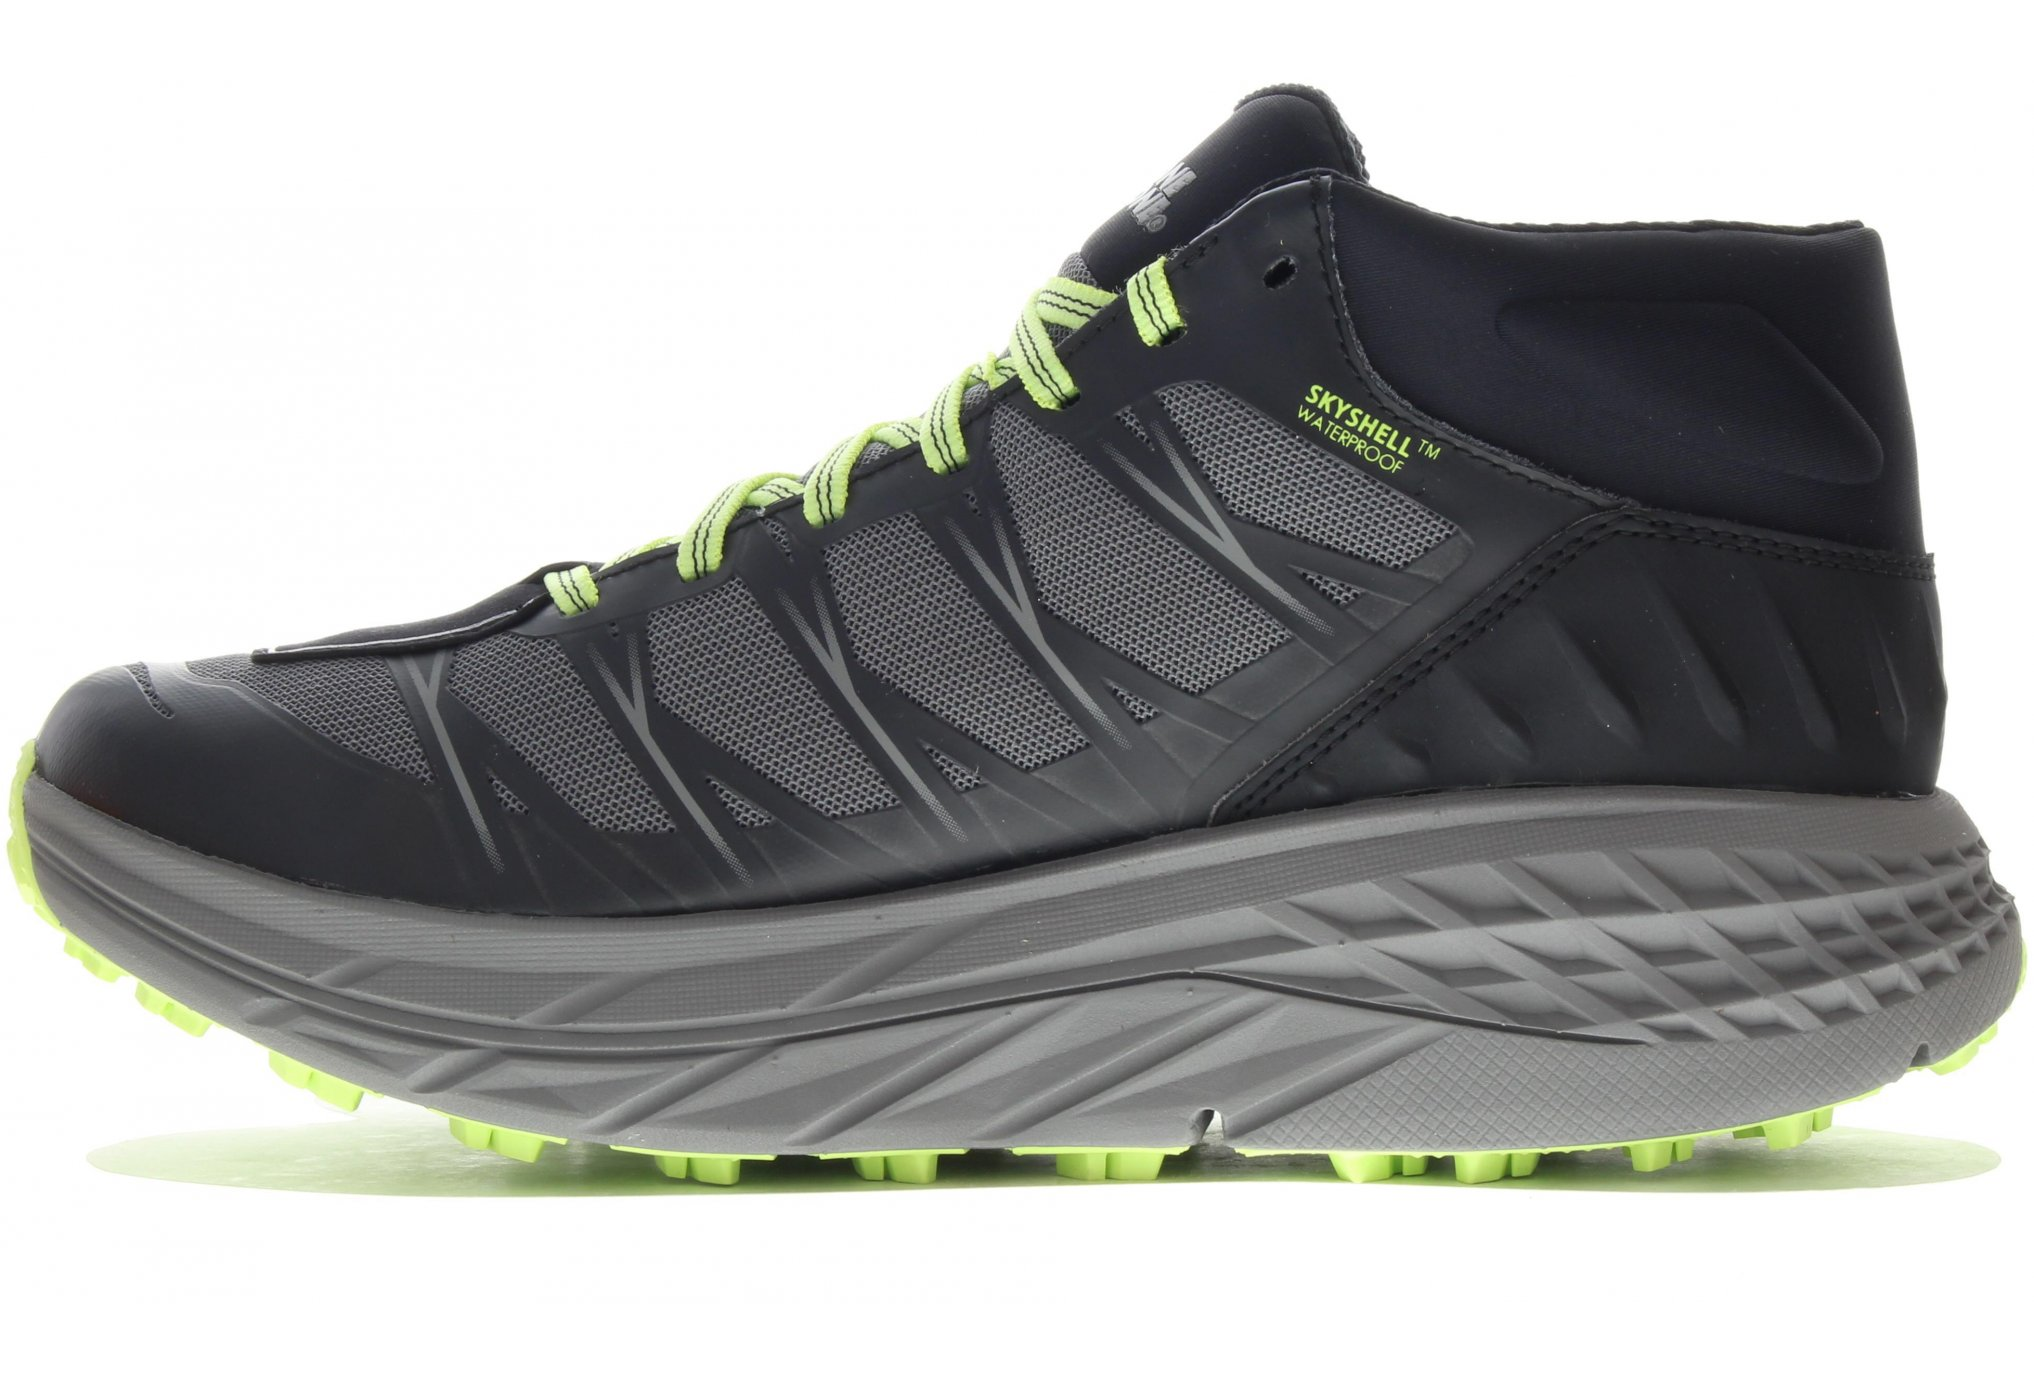 HOKA ONE ONE M SPEEDGOAT MID WP BLACK STEEL GREY